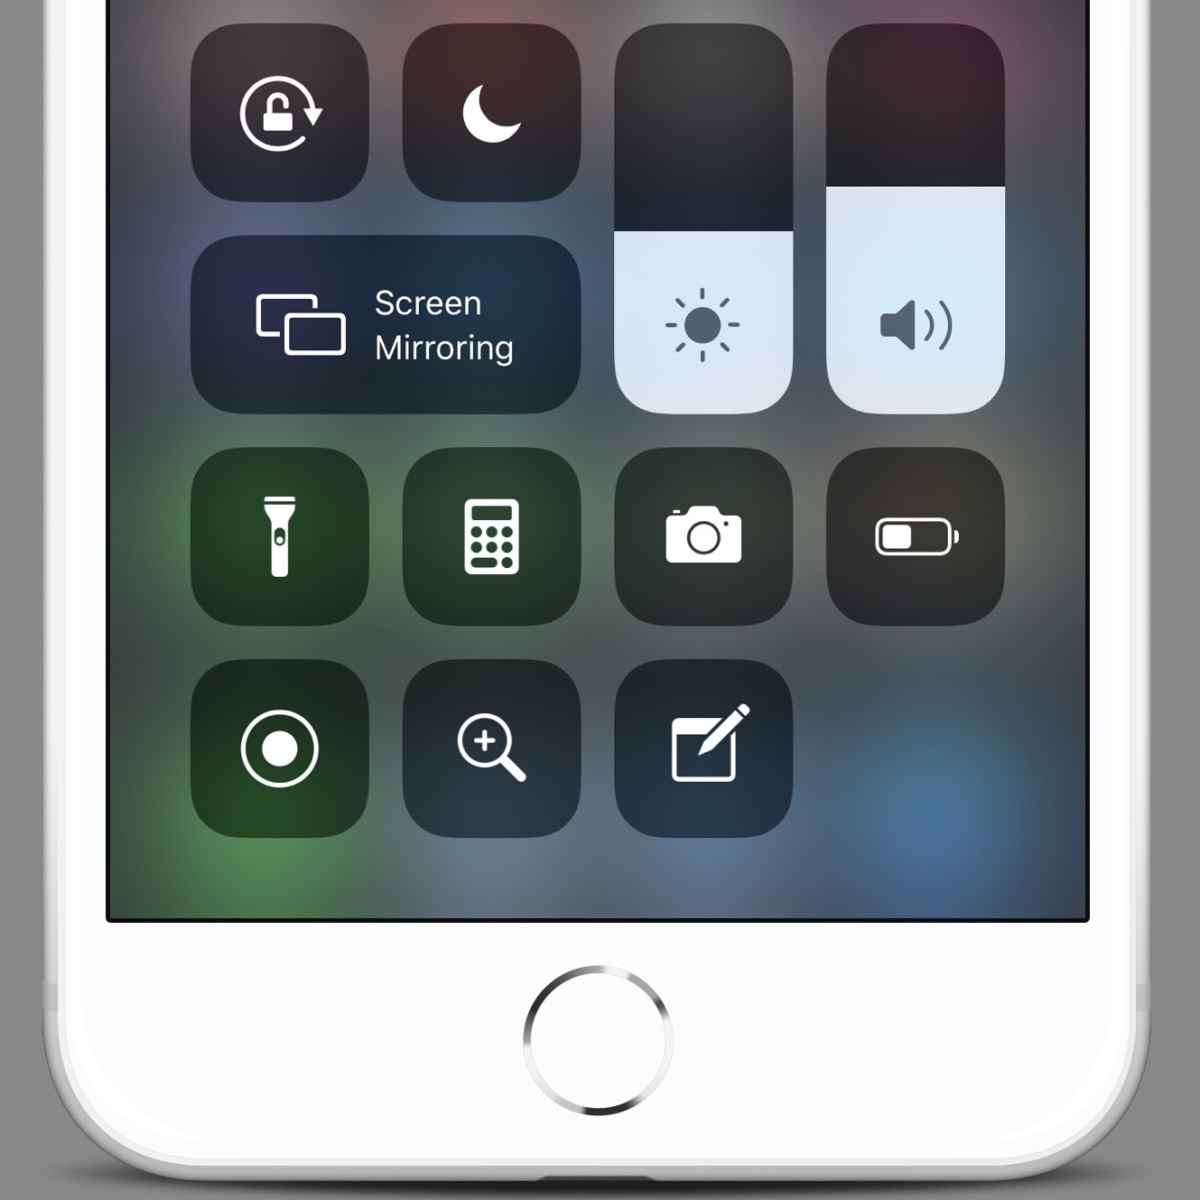 This screenshot shows some of my favorite Control Center actions